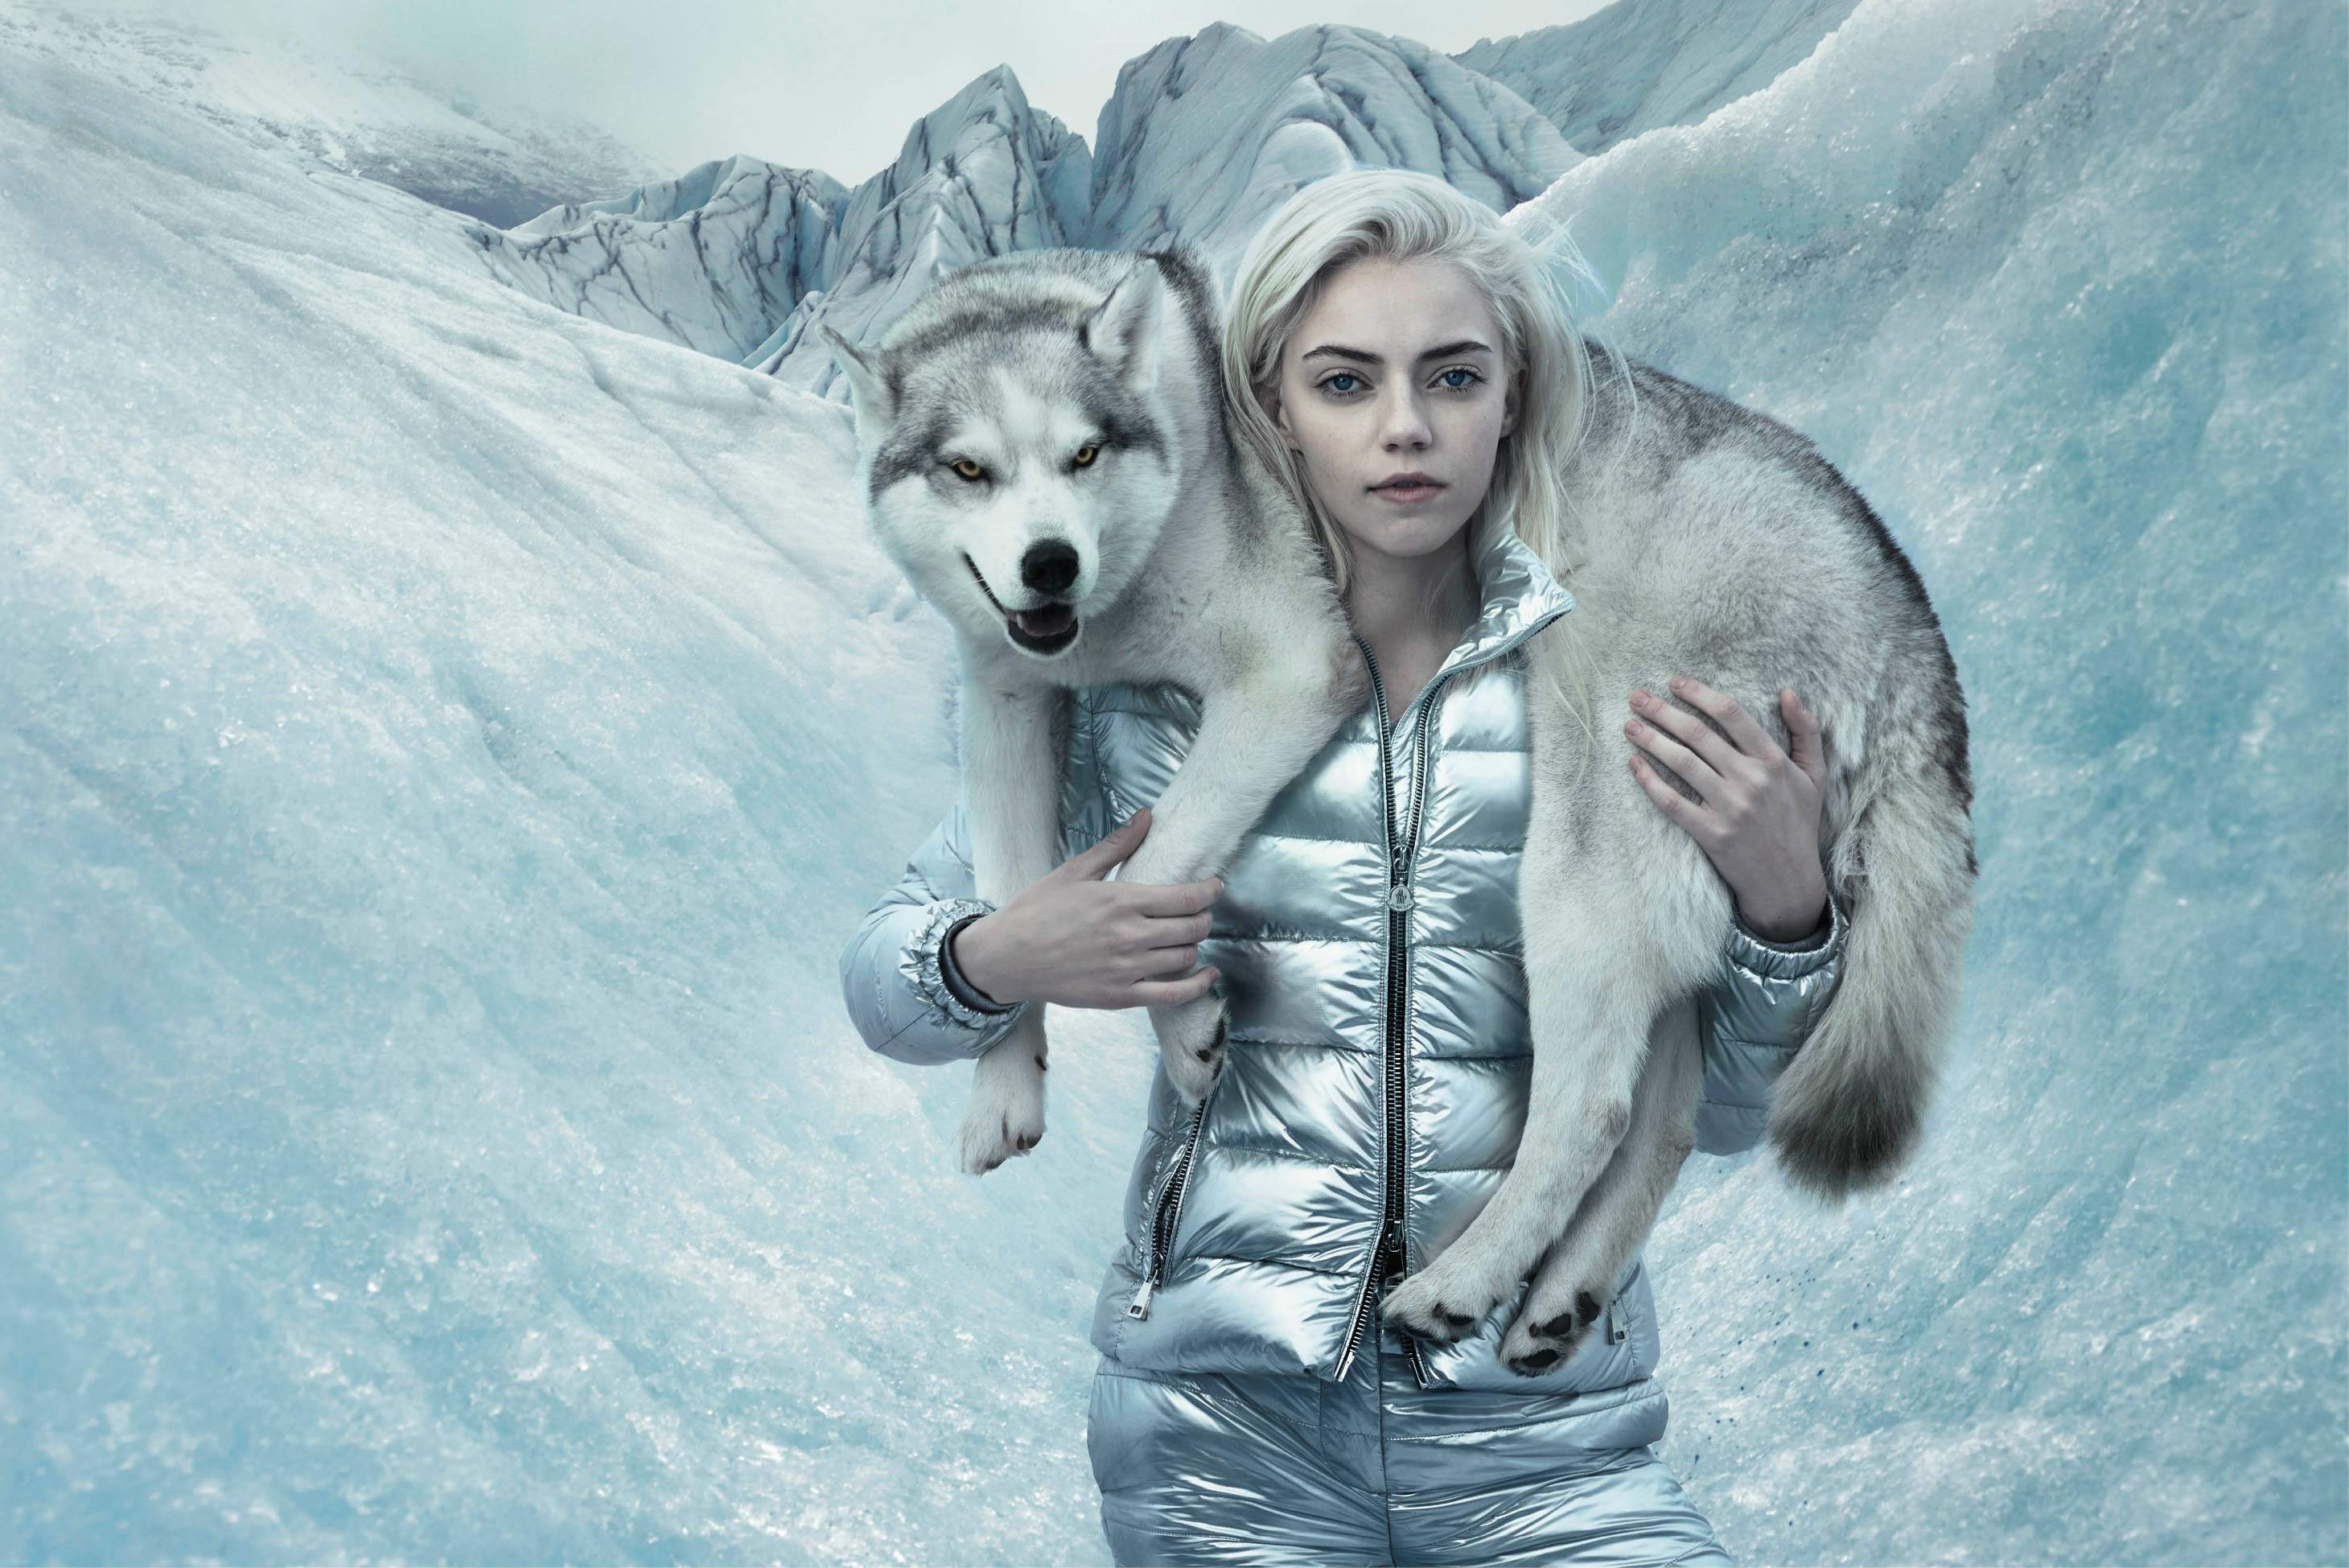 MONCLER FW15 CAMPAIGN BY ANNIE LEIBOVITZ